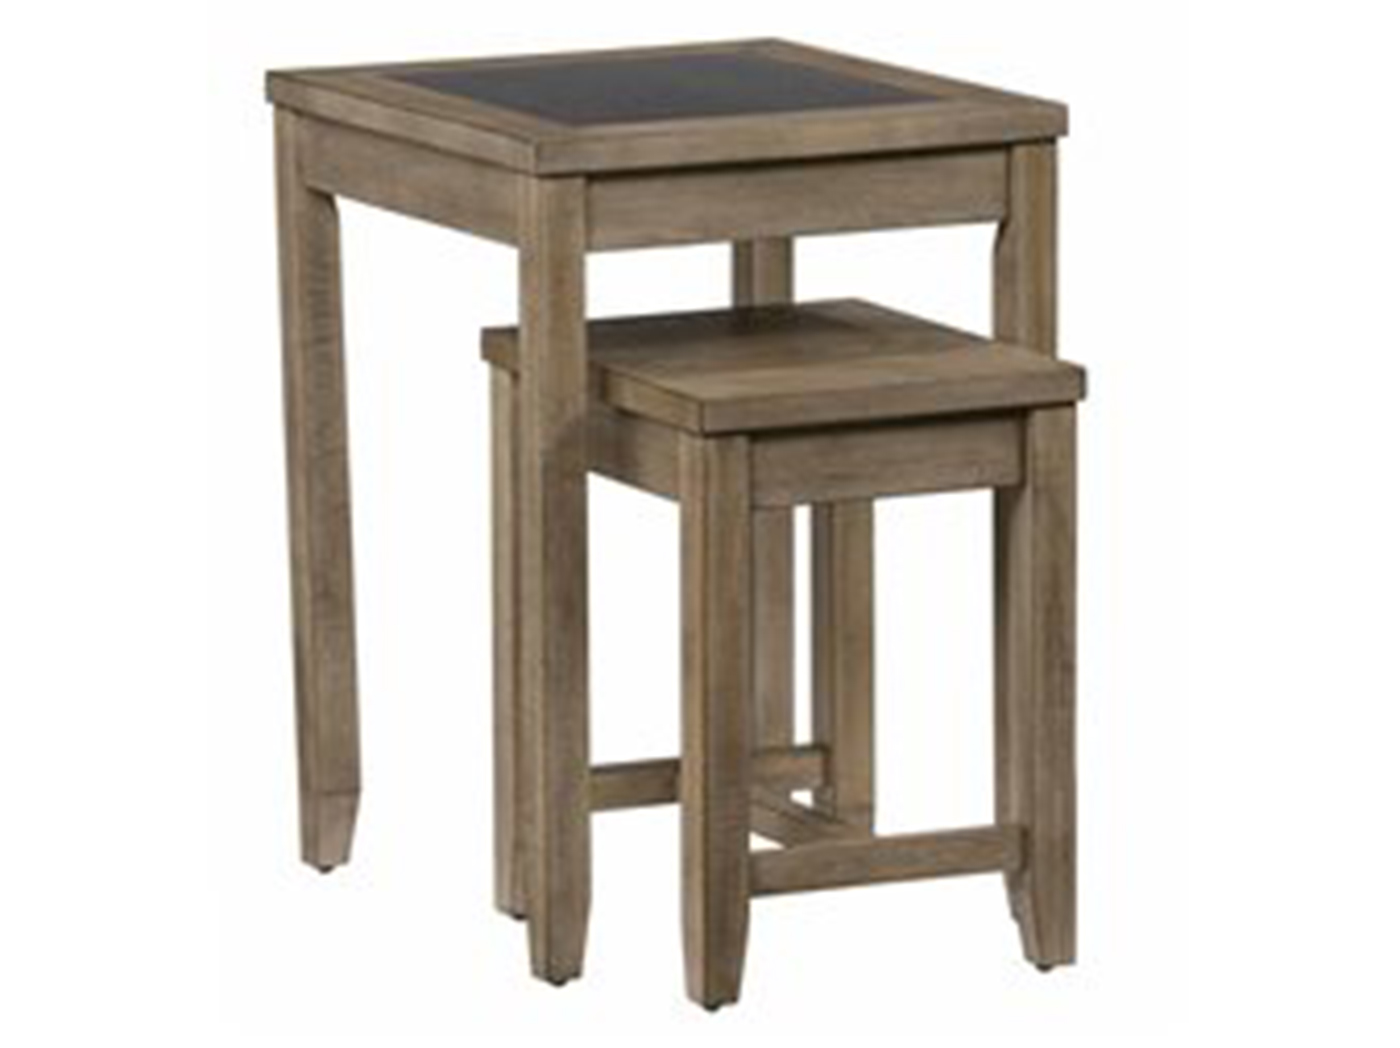 Sun Valley Nesting Tables